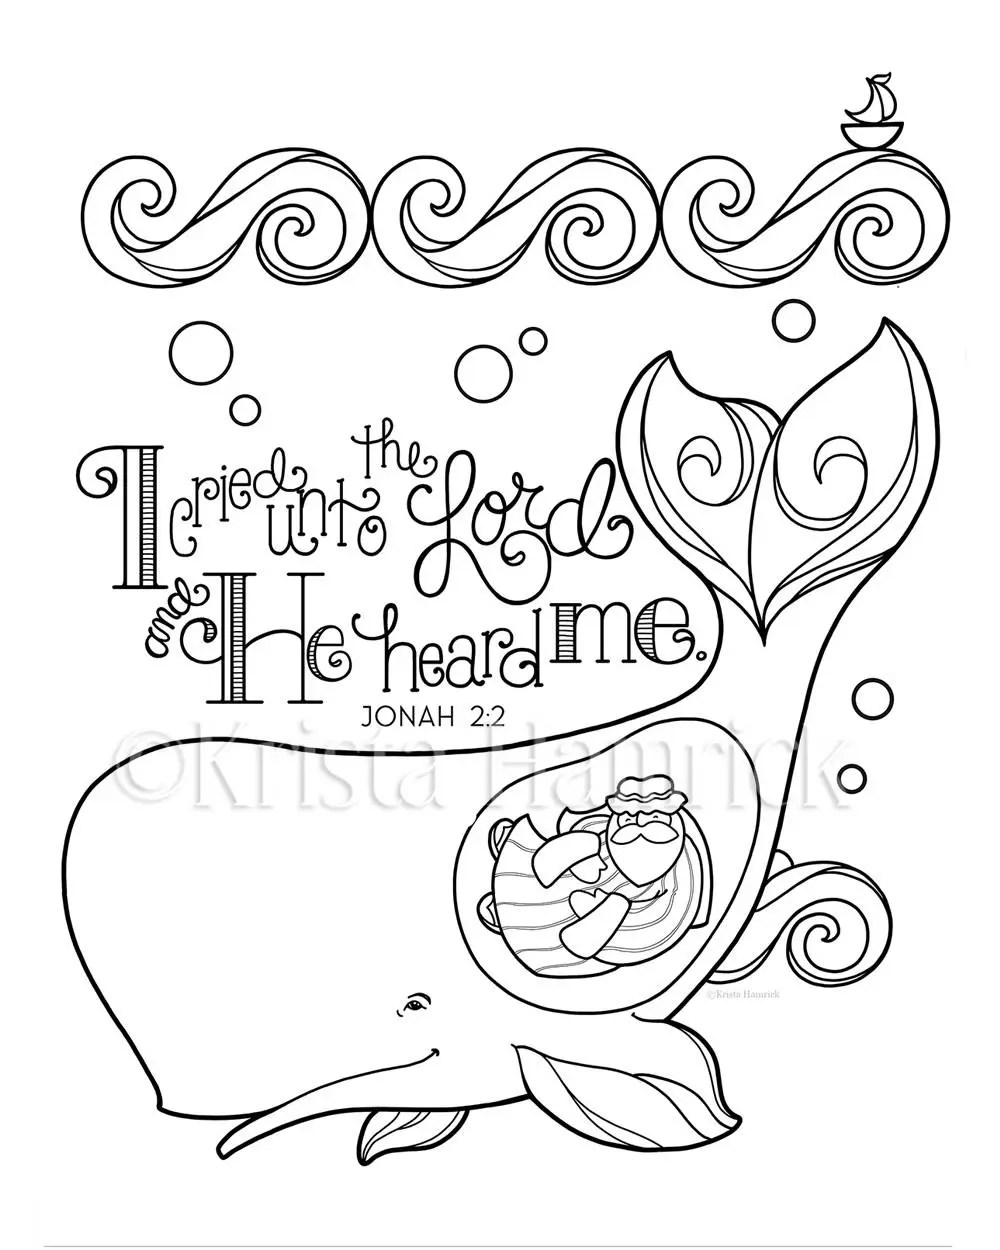 Jonah and the Whale coloring page 8.5X11 Bible journaling